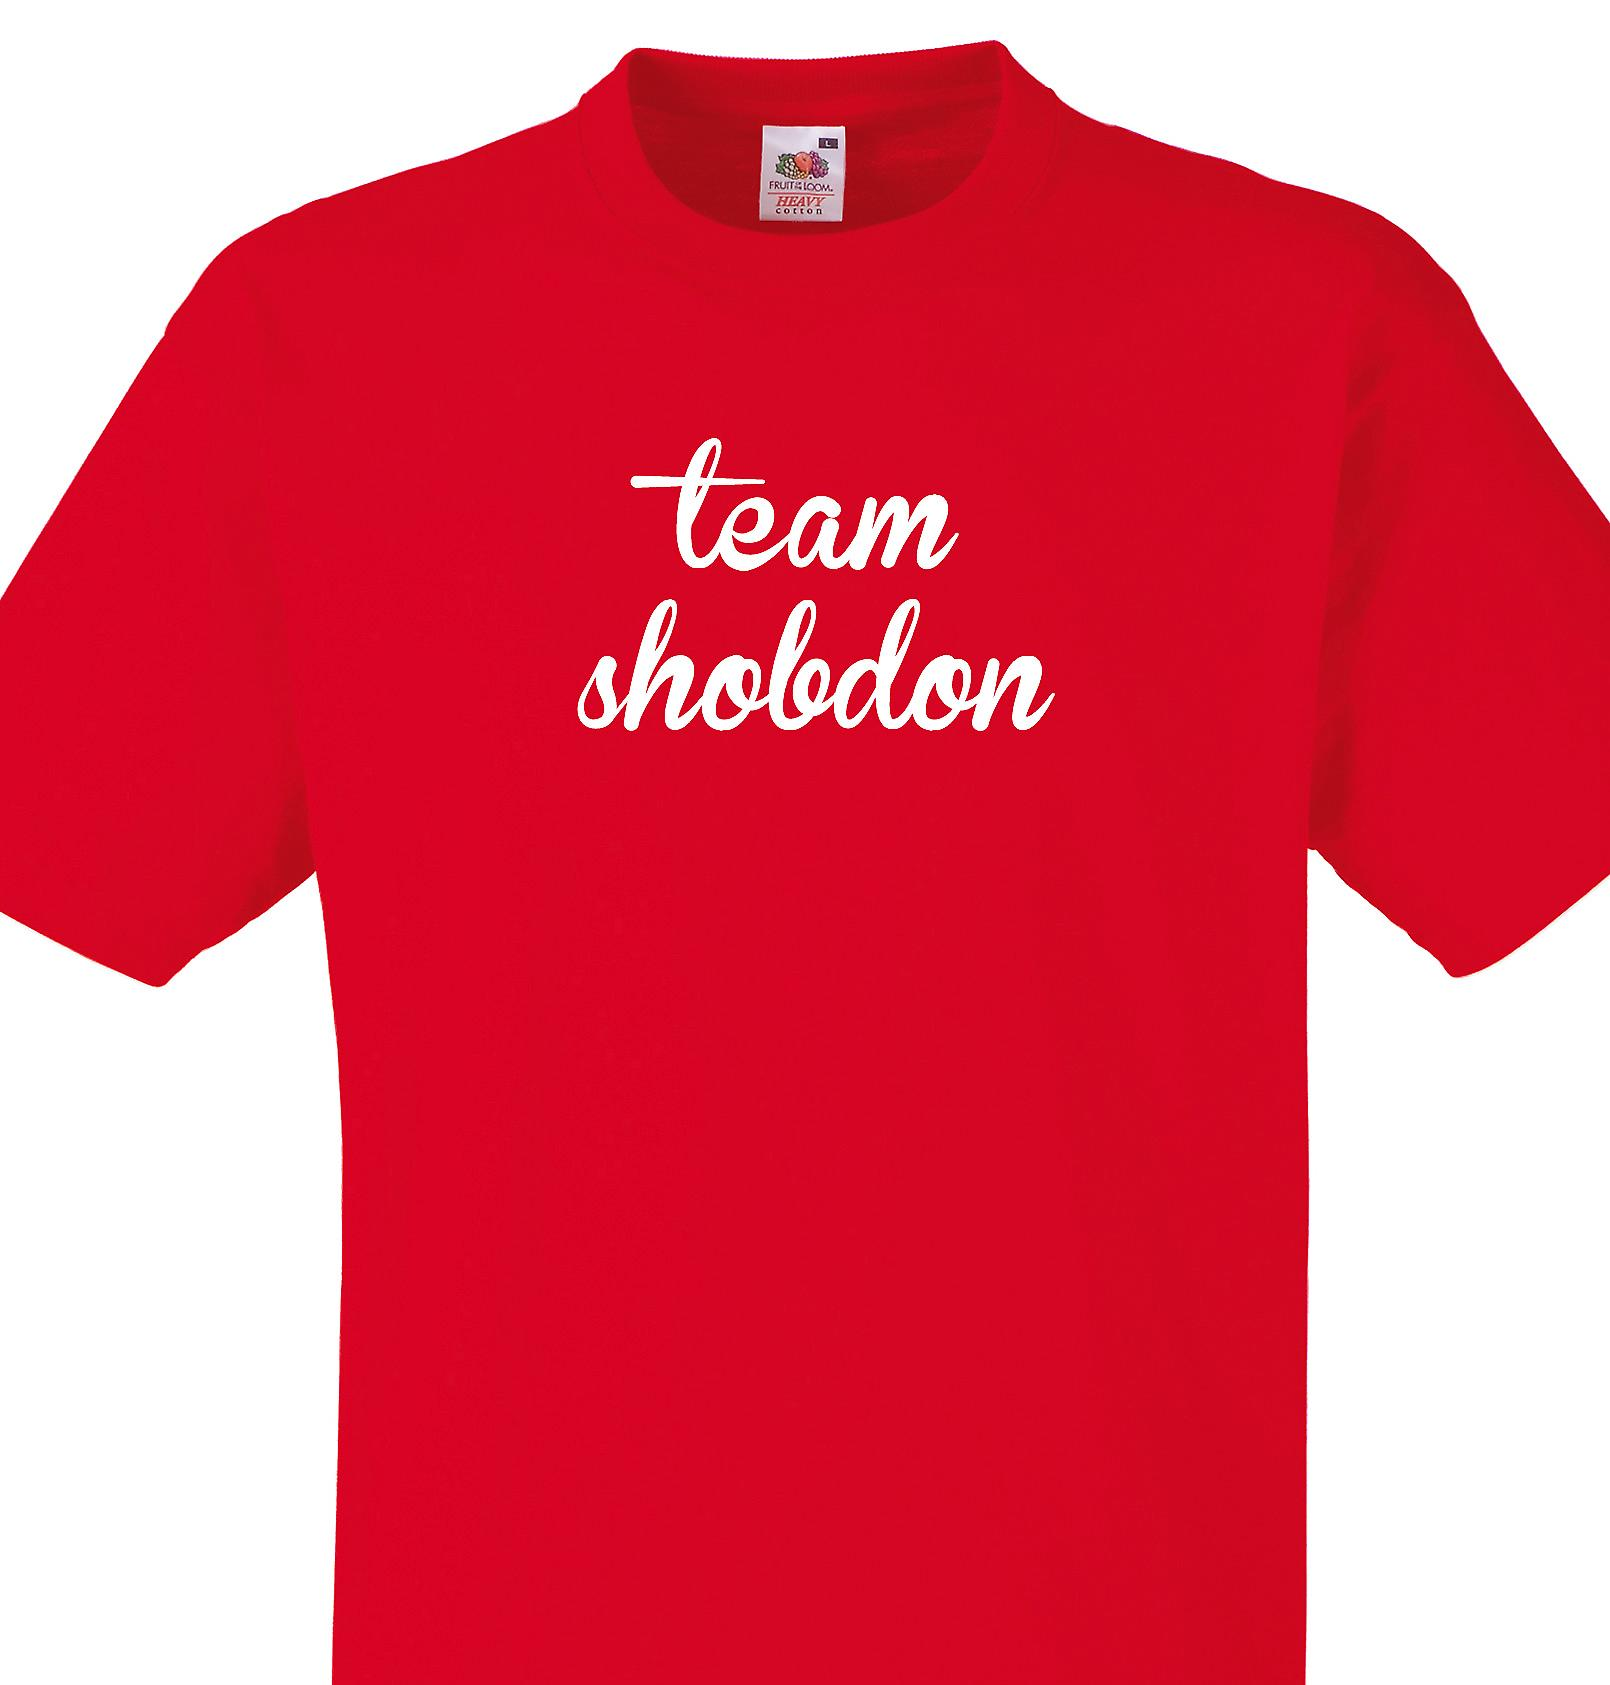 Team Shobdon Red T shirt